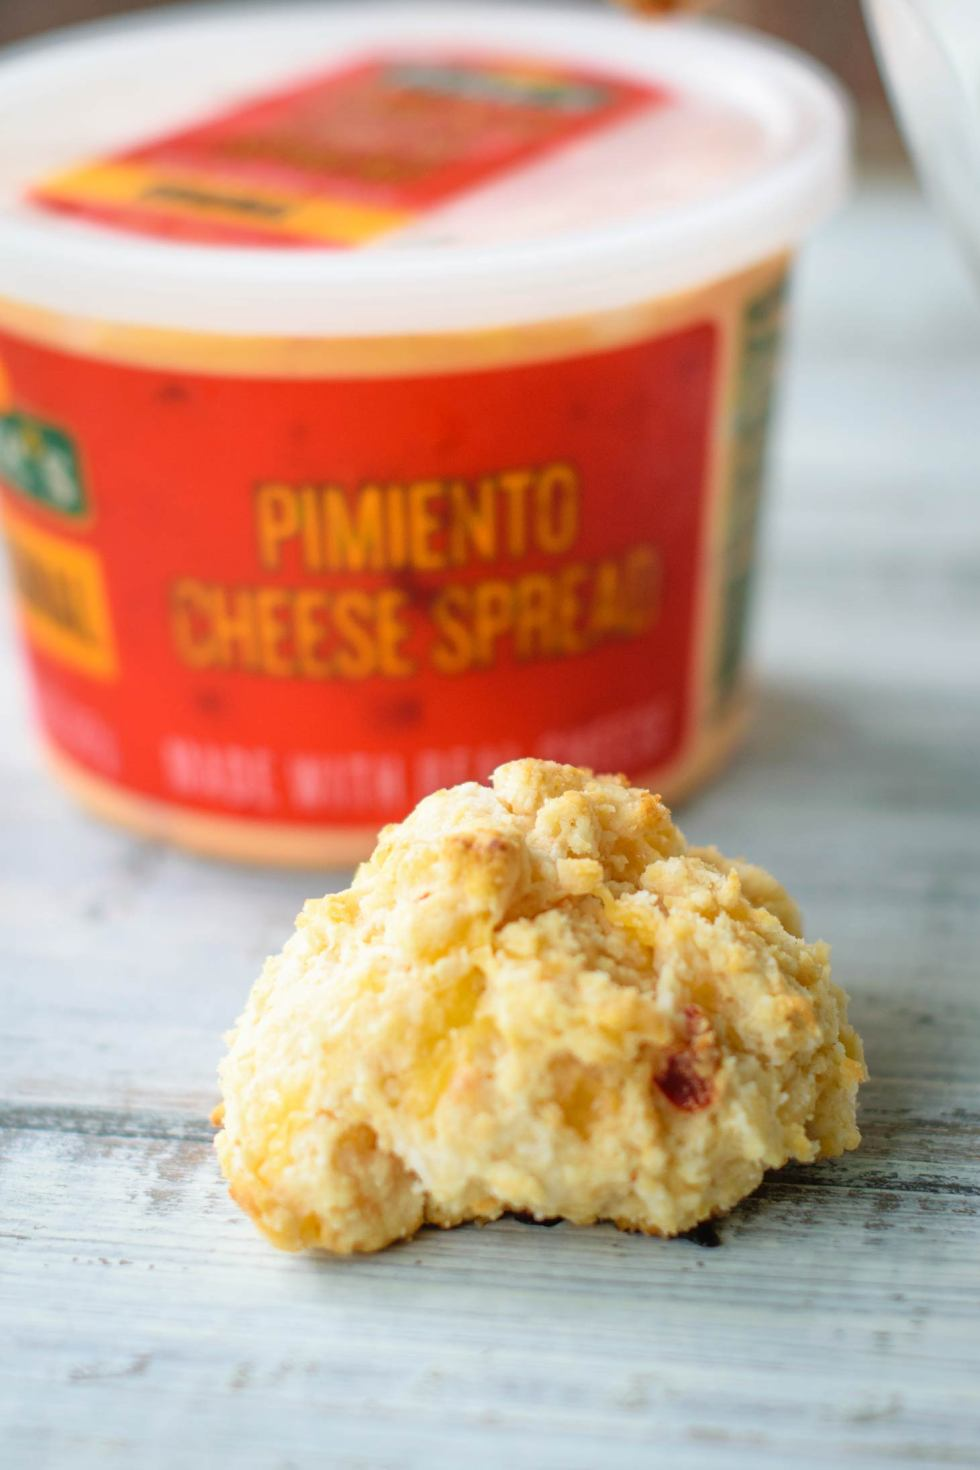 Pimiento cheese makes quick and easy cheese biscuits